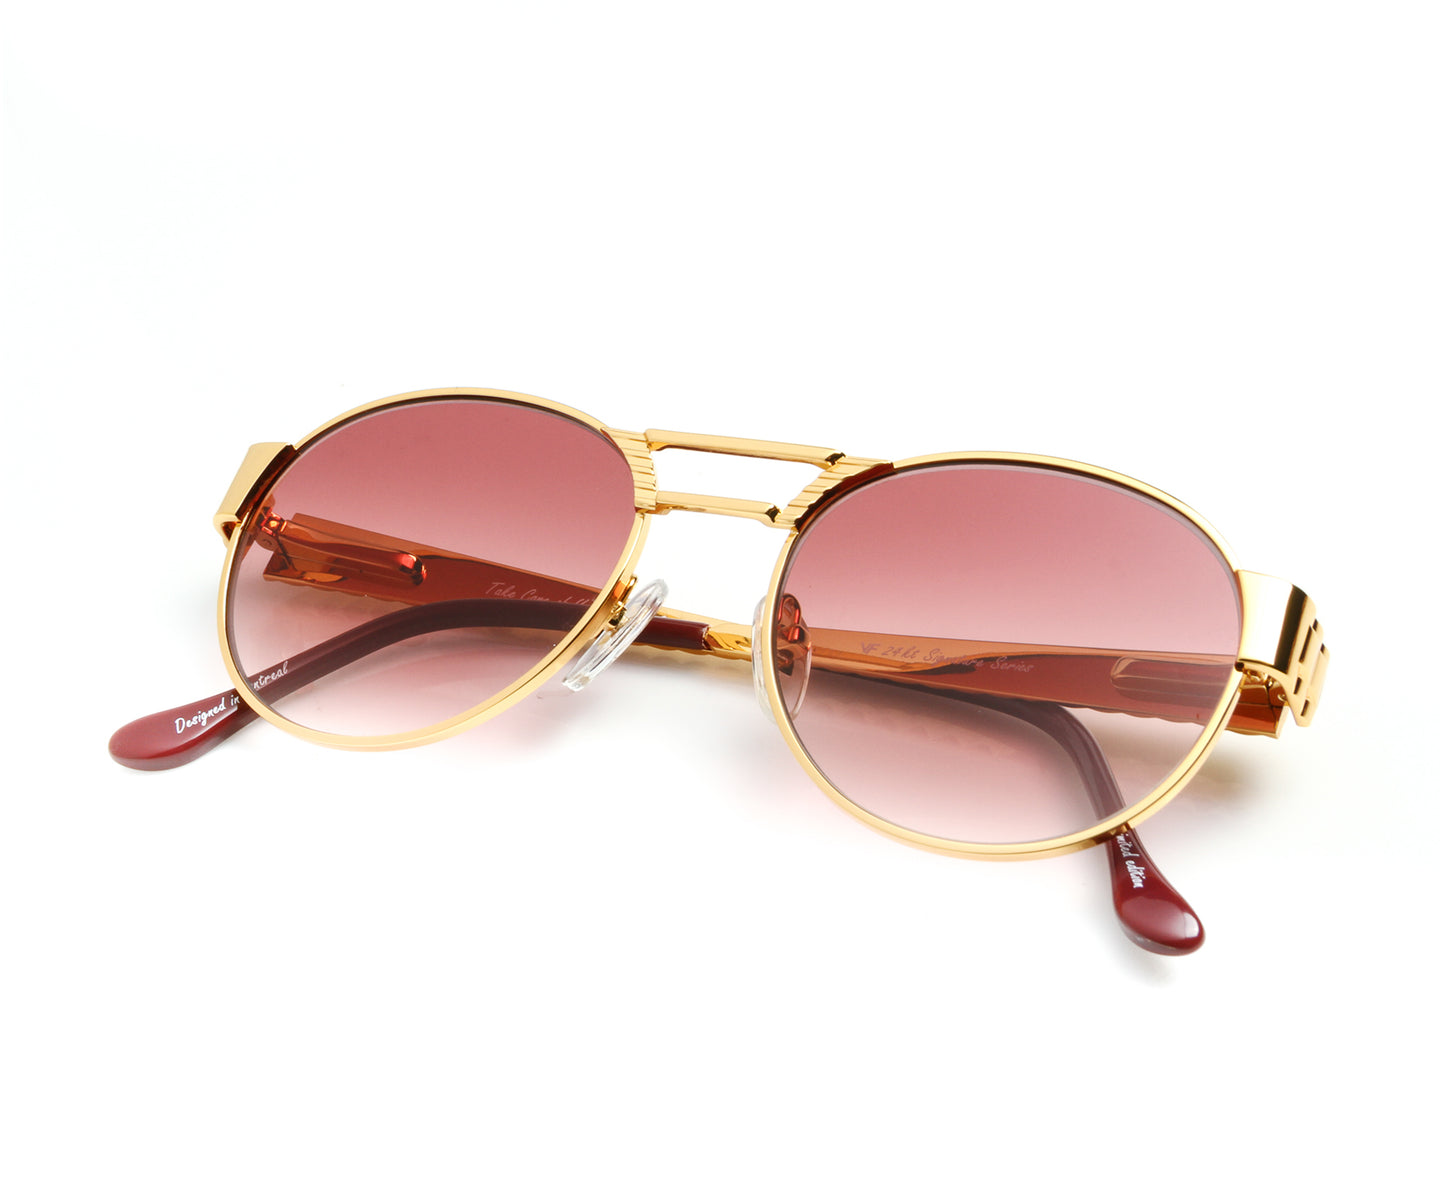 VF Jubilee 24KT Gold (Burgundy Gradient) Thumb, VF Masterpiece , glasses frames, eyeglasses online, eyeglass frames, mens glasses, womens glasses, buy glasses online, designer eyeglasses, vintage sunglasses, retro sunglasses, vintage glasses, sunglass, eyeglass, glasses, lens, vintage frames company, vf